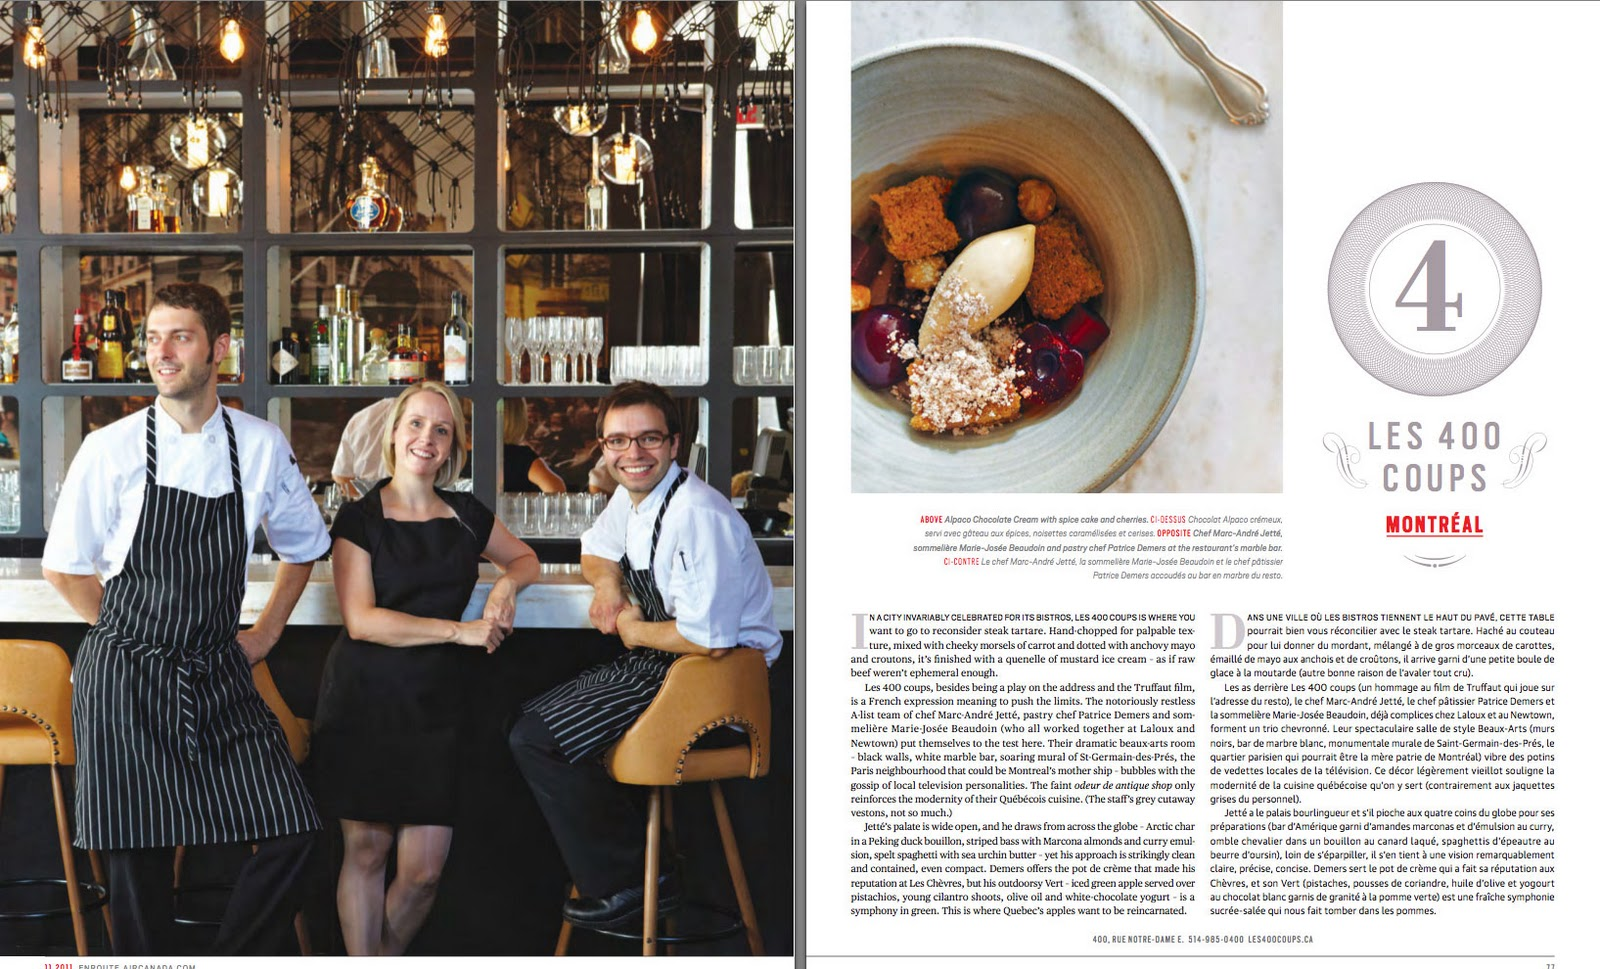 Montreal for insiders les 400 coups named one of canada 39 s best new restaurants by en route magazine - Les 400 coups restaurant ...